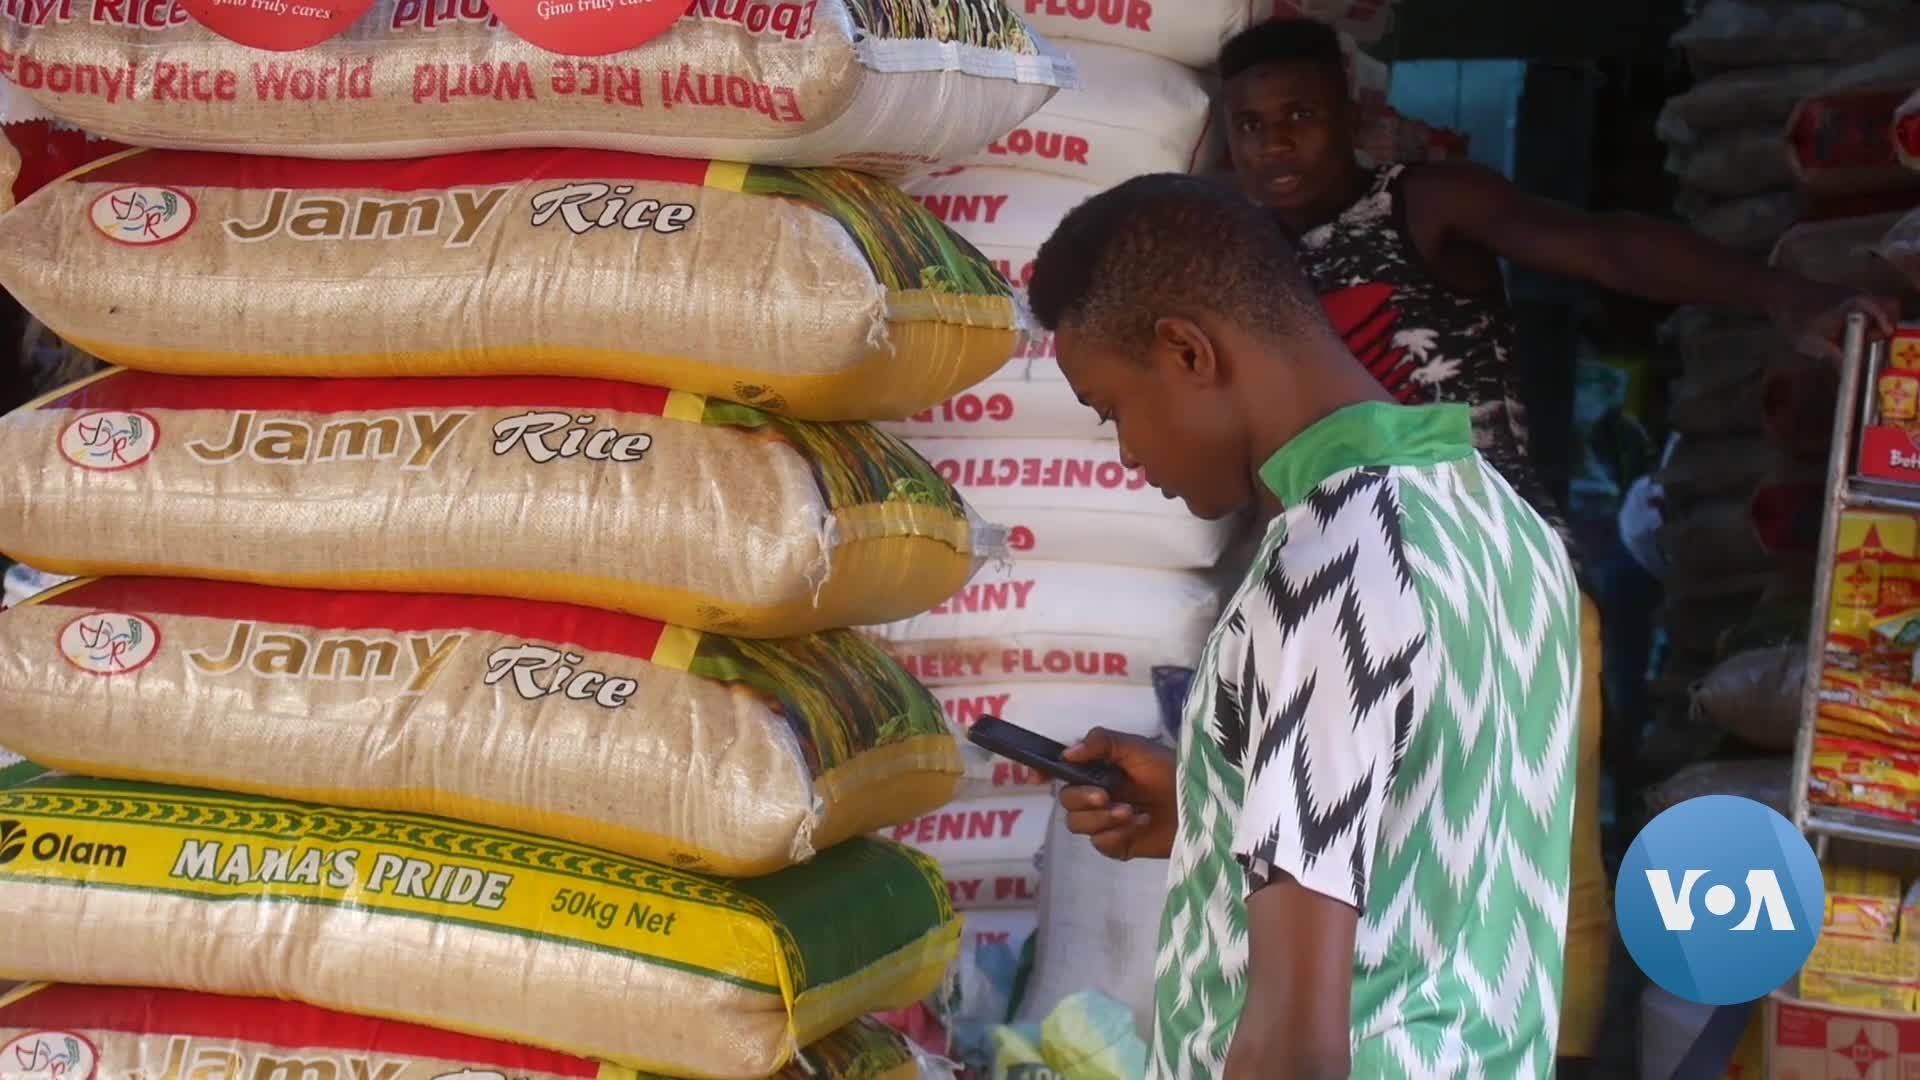 Nigeria's Border Smuggling Crackdown Affecting Regional Trade, Prices